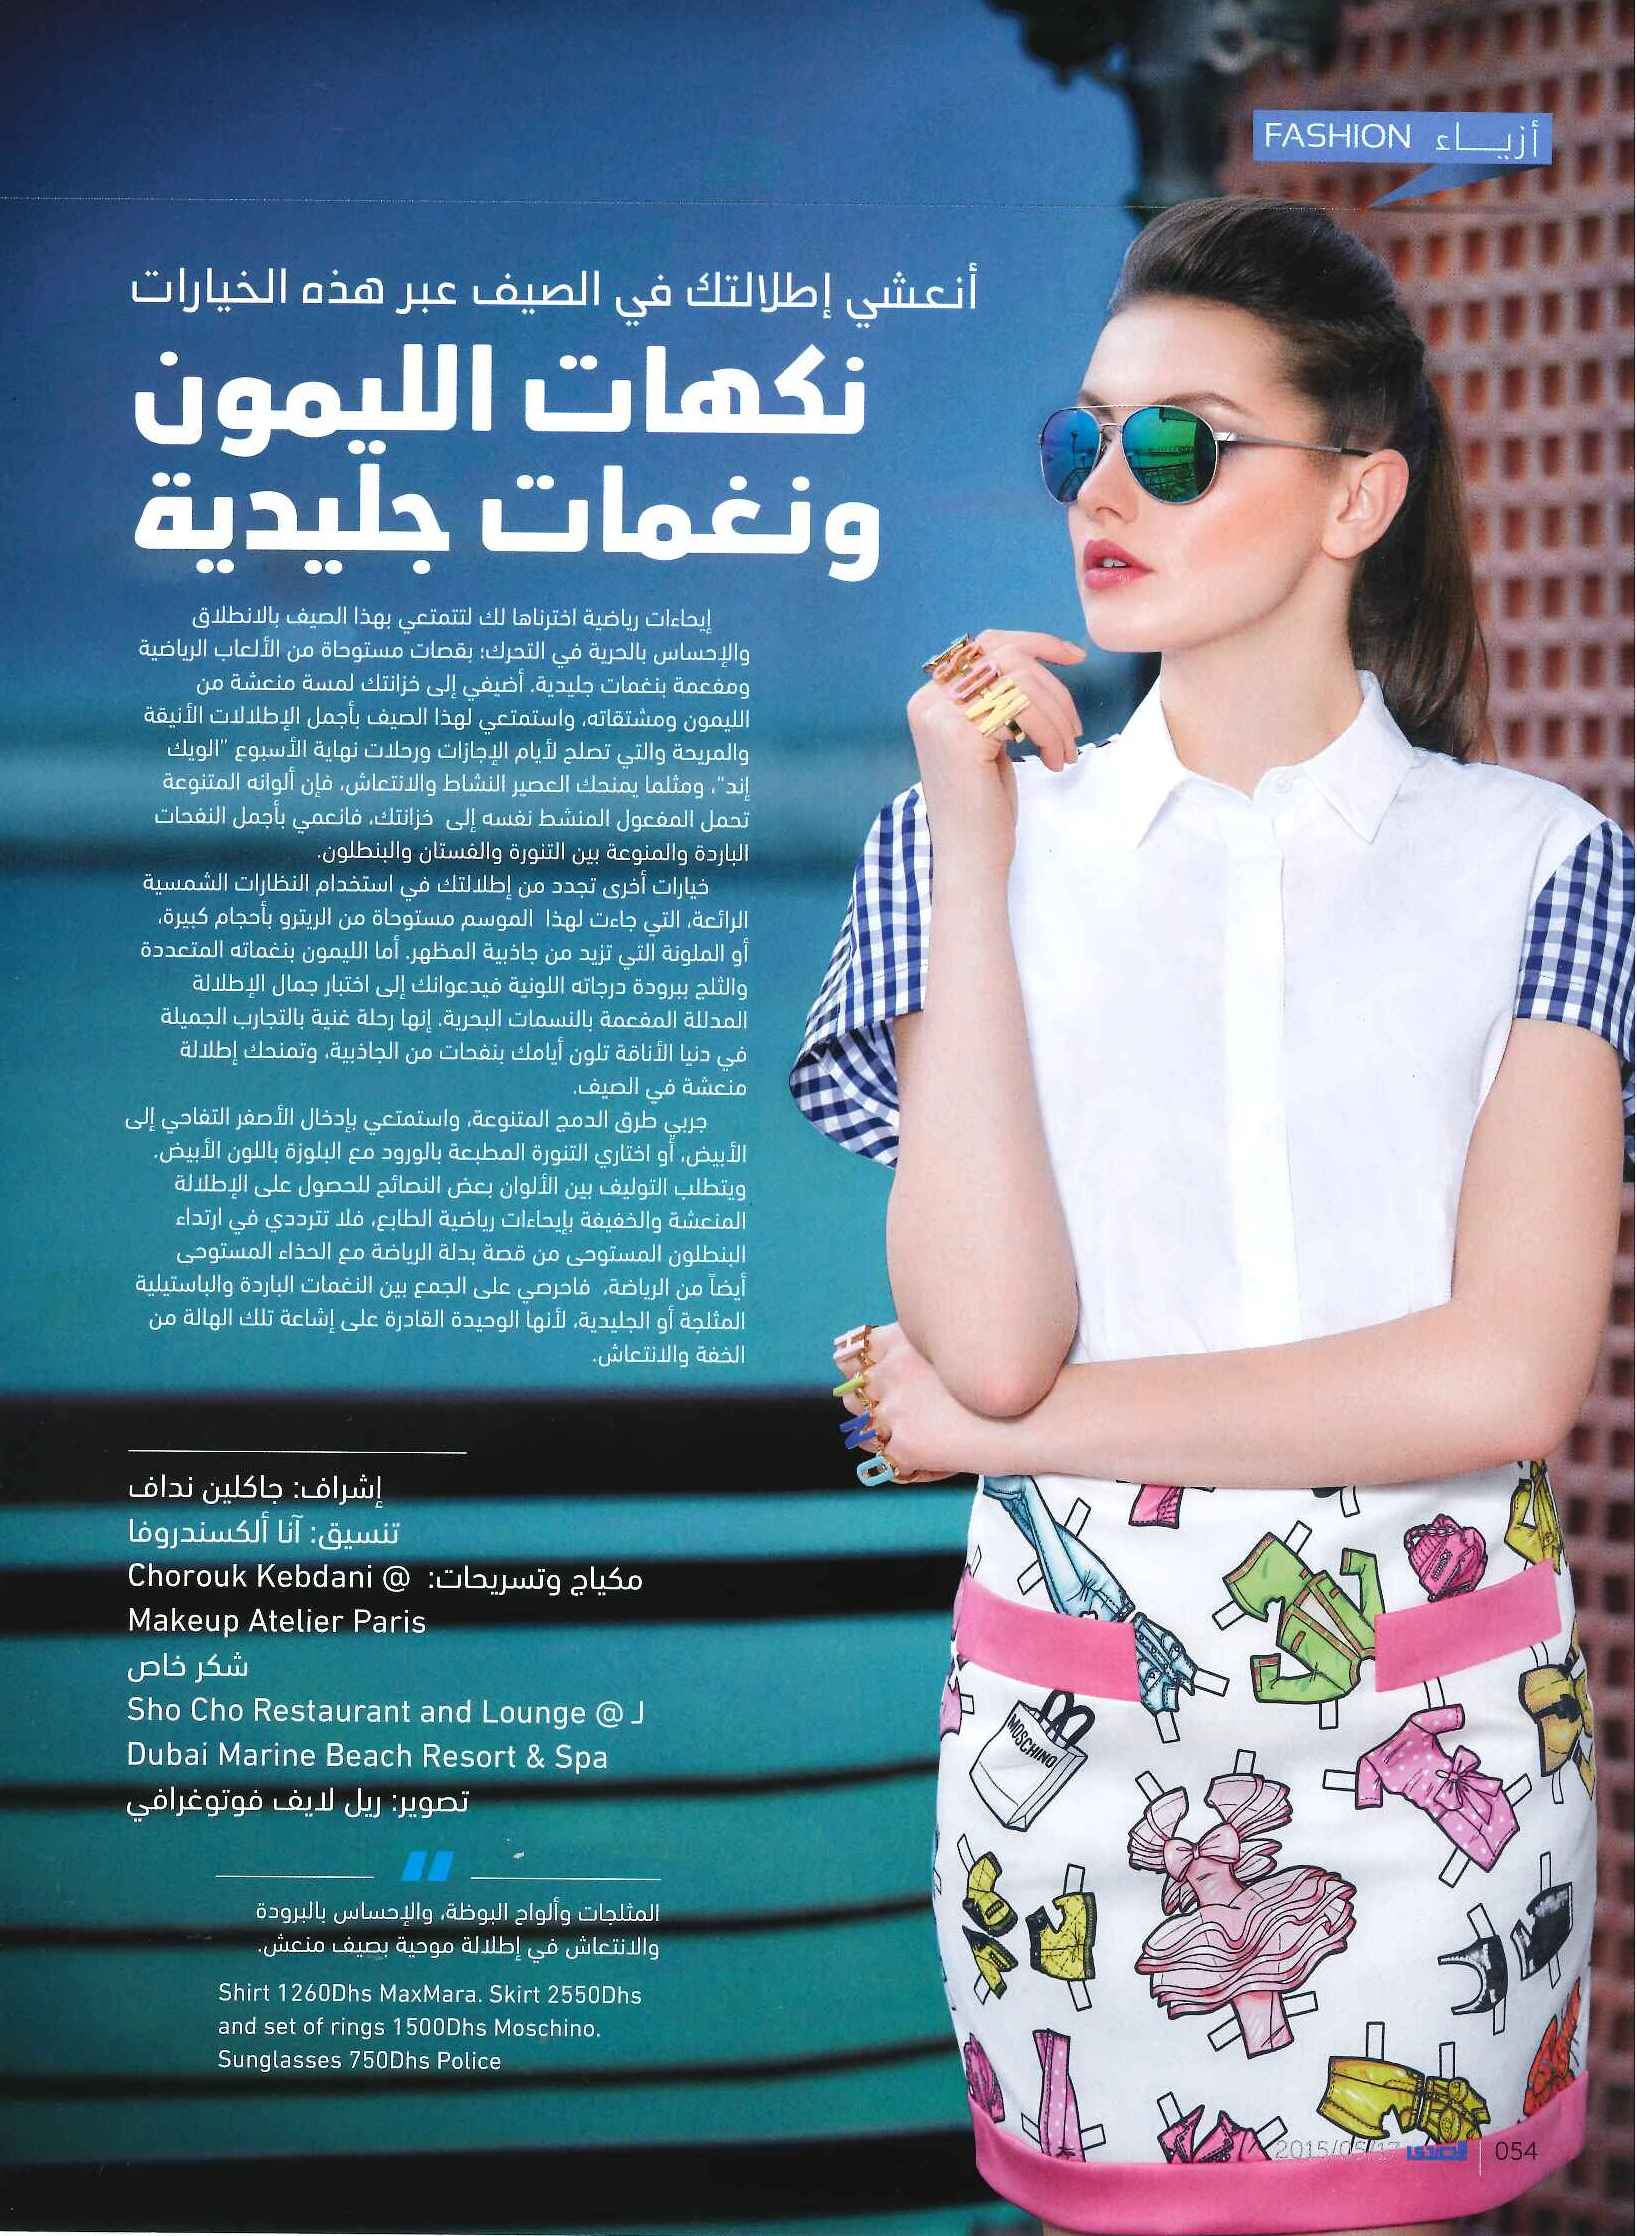 FLC Models & Talents - Catalogue Shoots - Al Sada - Marina May 15